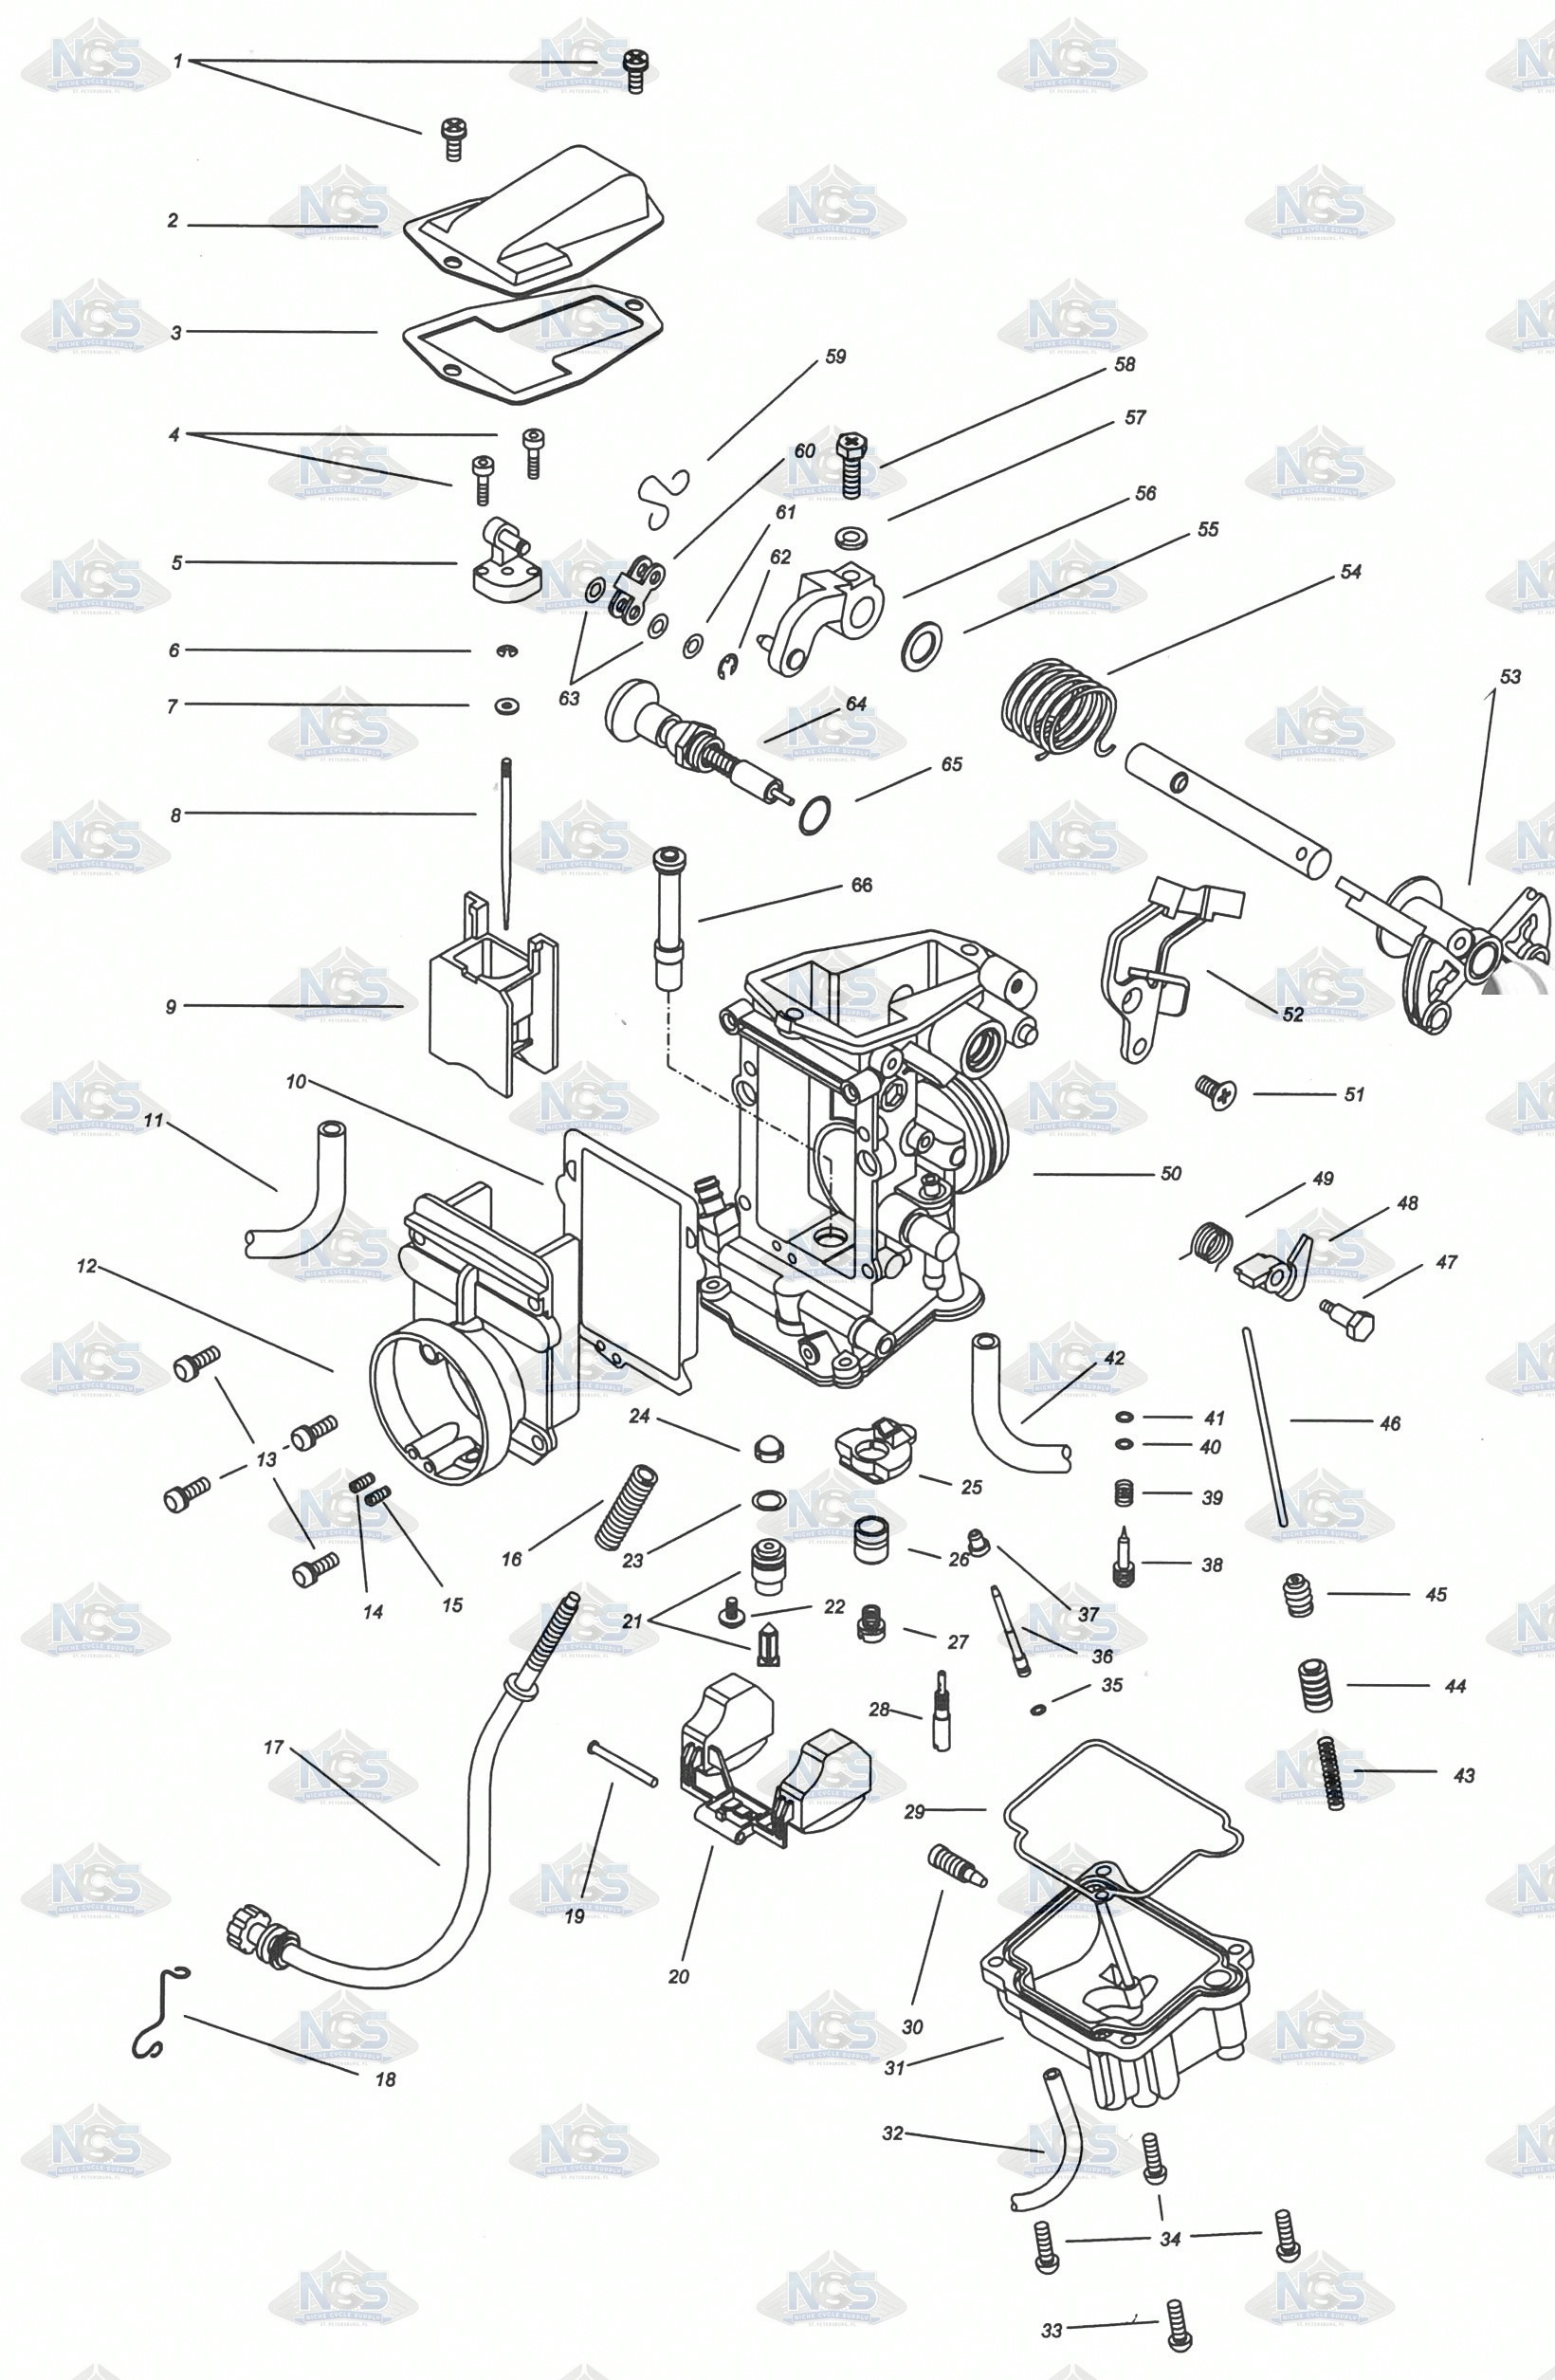 Tm33 Exploded View